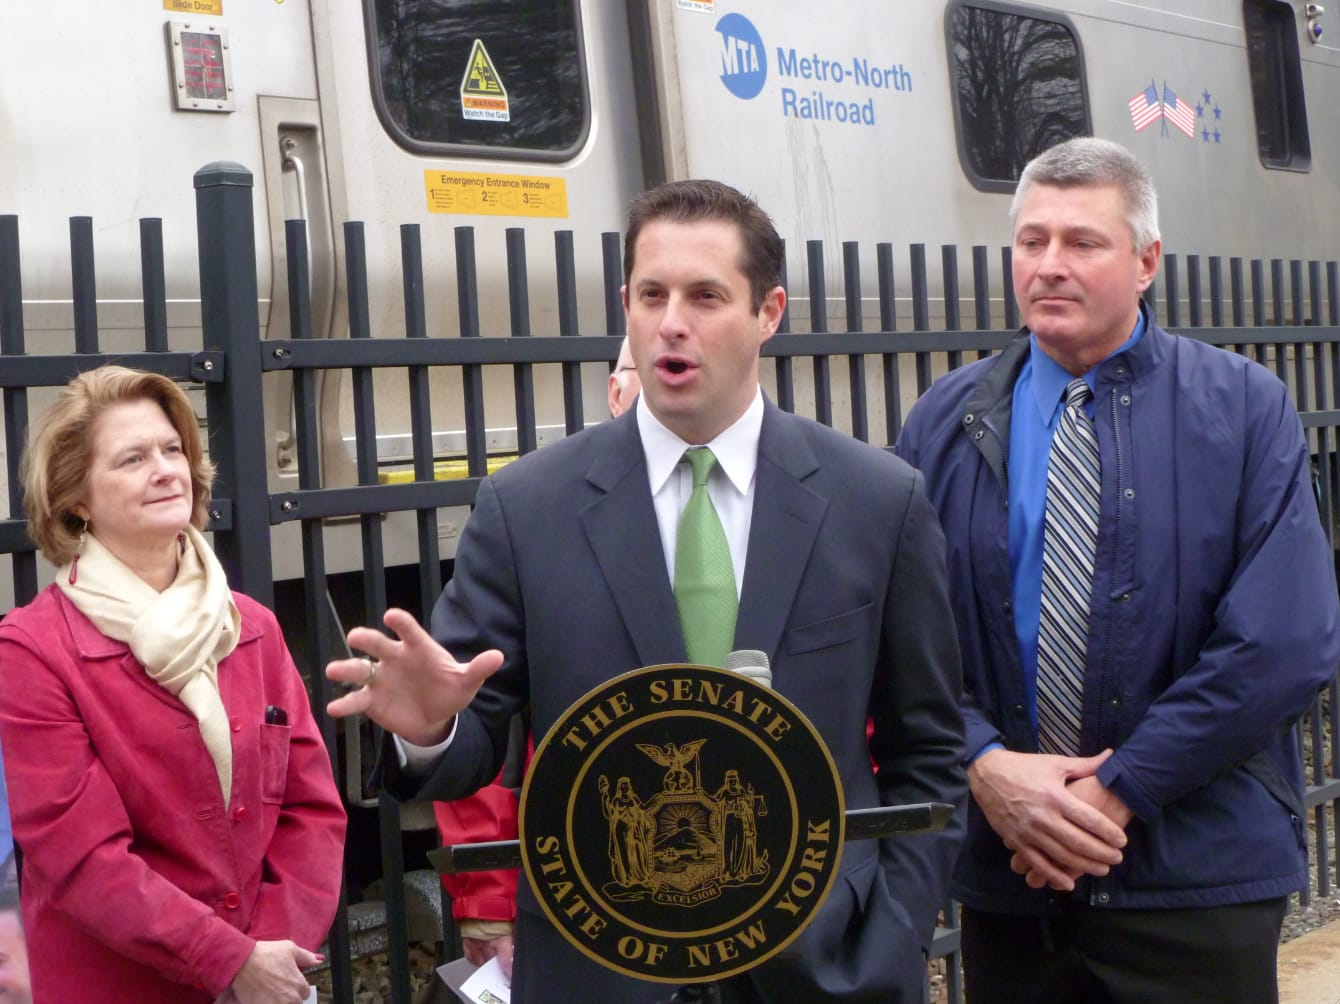 State Sen. Greg Ball was openly critical of a proposal to provide ID cards to illegal aliens in New York City recently.